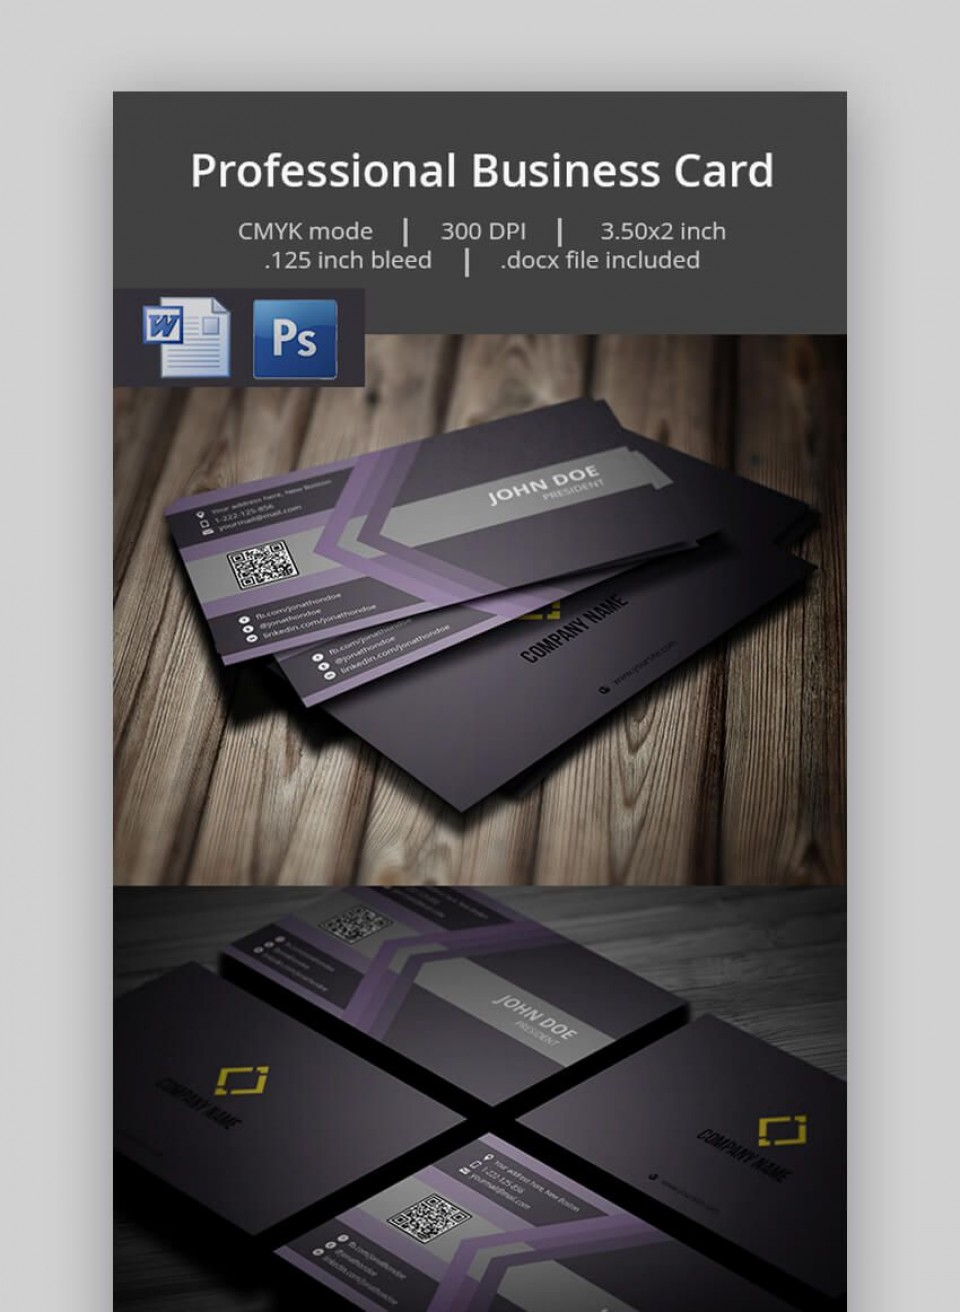 009 Formidable M Office Busines Card Template Highest Clarity  Microsoft 2010 2003 2007960